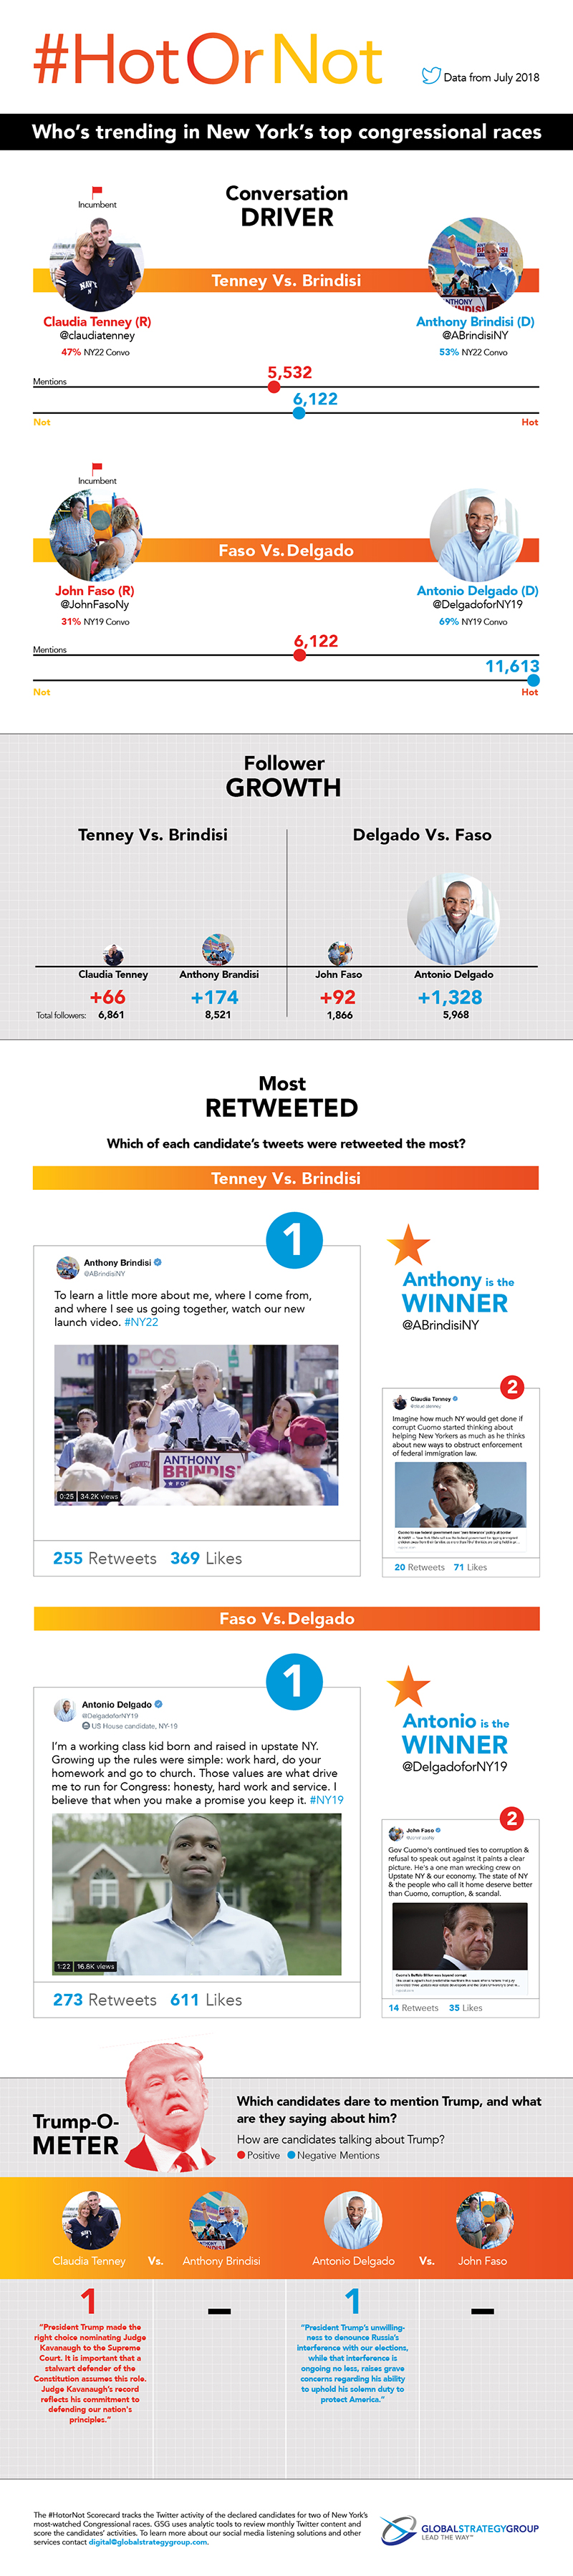 Social media trends for New York congressional district 19 and 22